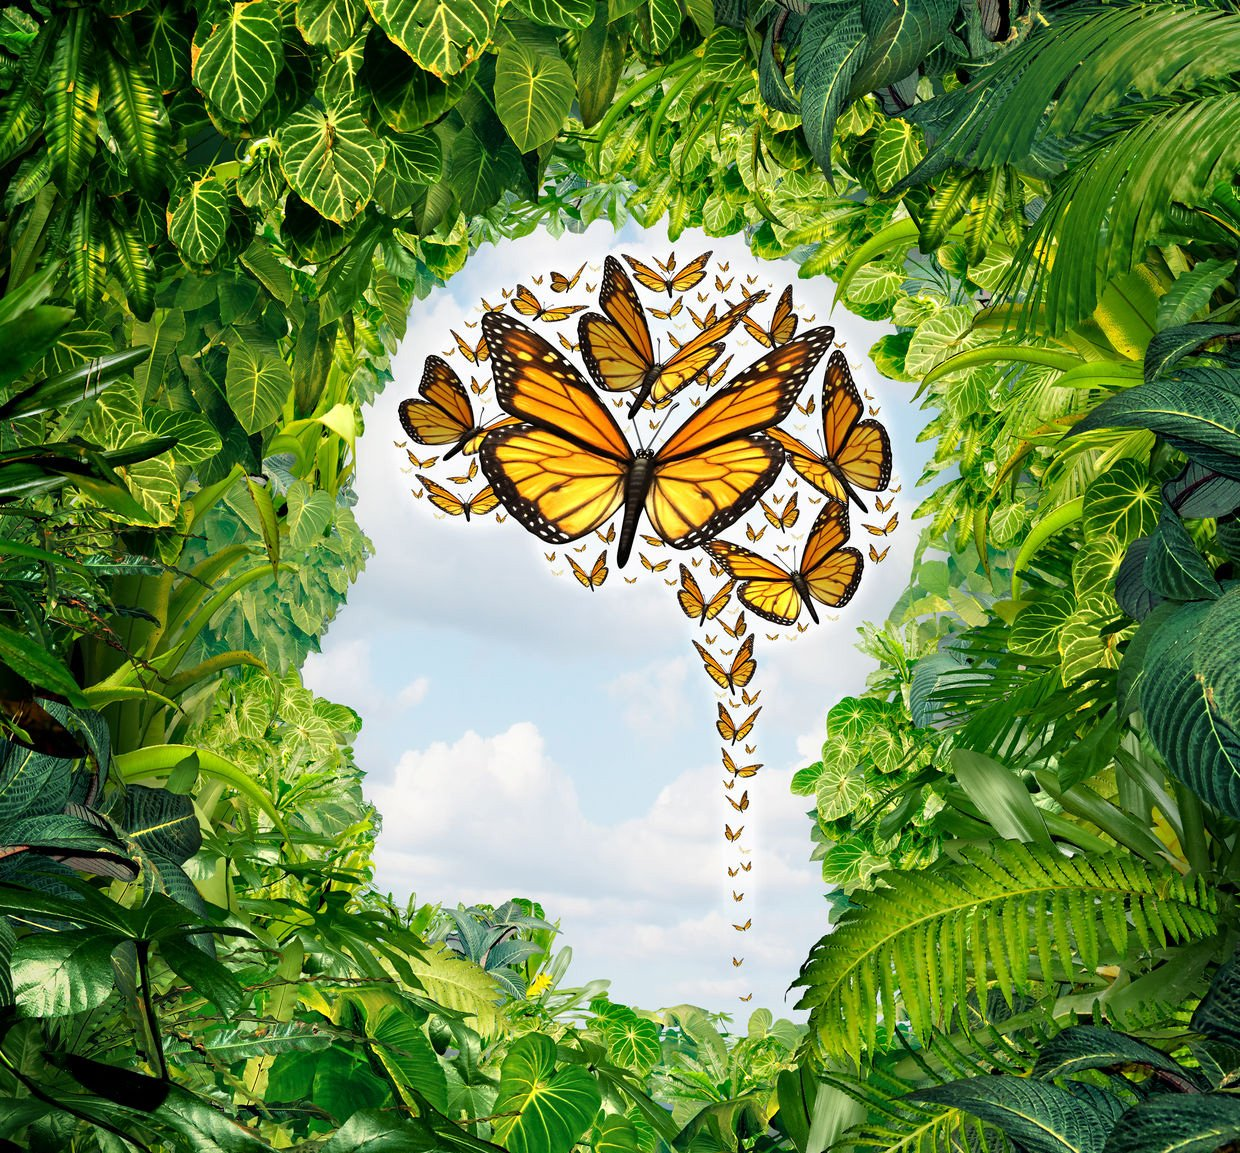 26171428 - intelligence and human creativity as a freedom of ideas symbol on a green jungle landscape shaped as a head and a group of flying monarch butterflies in the shape of a brain as a mental health and education metaphor for the potential of the mind